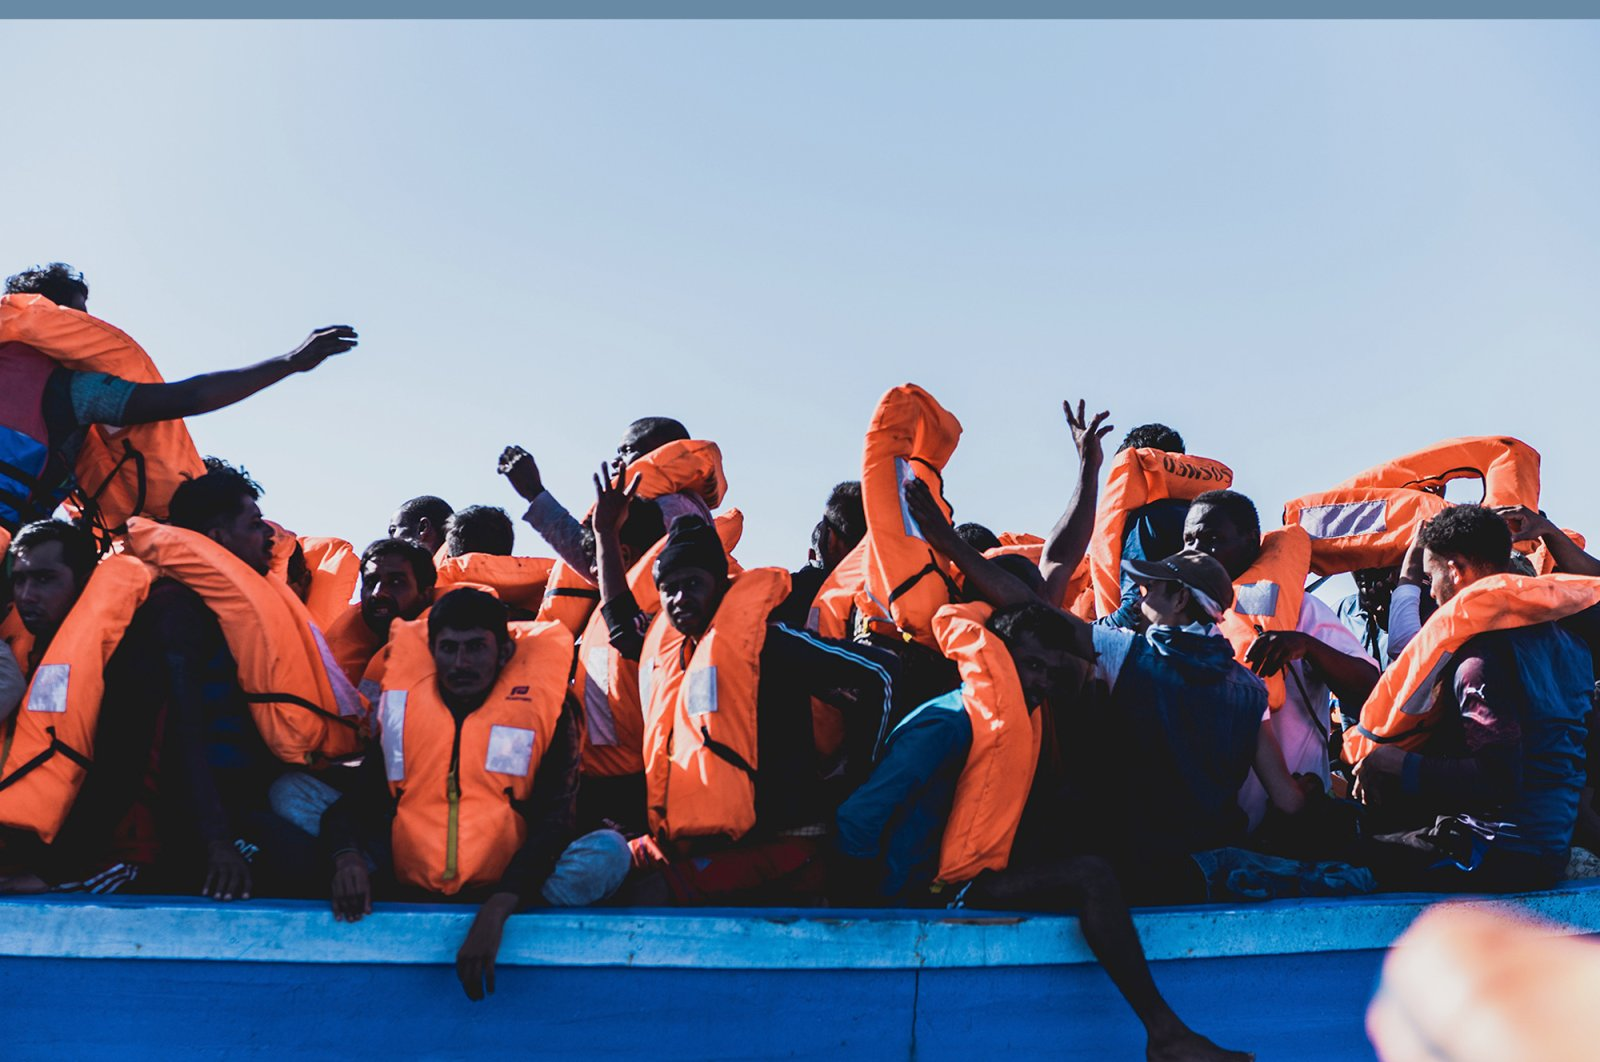 Migrants on a boat wear life jackets after being rescued in the Mediterranean Sea, June 30, 2020. (AP Photo)